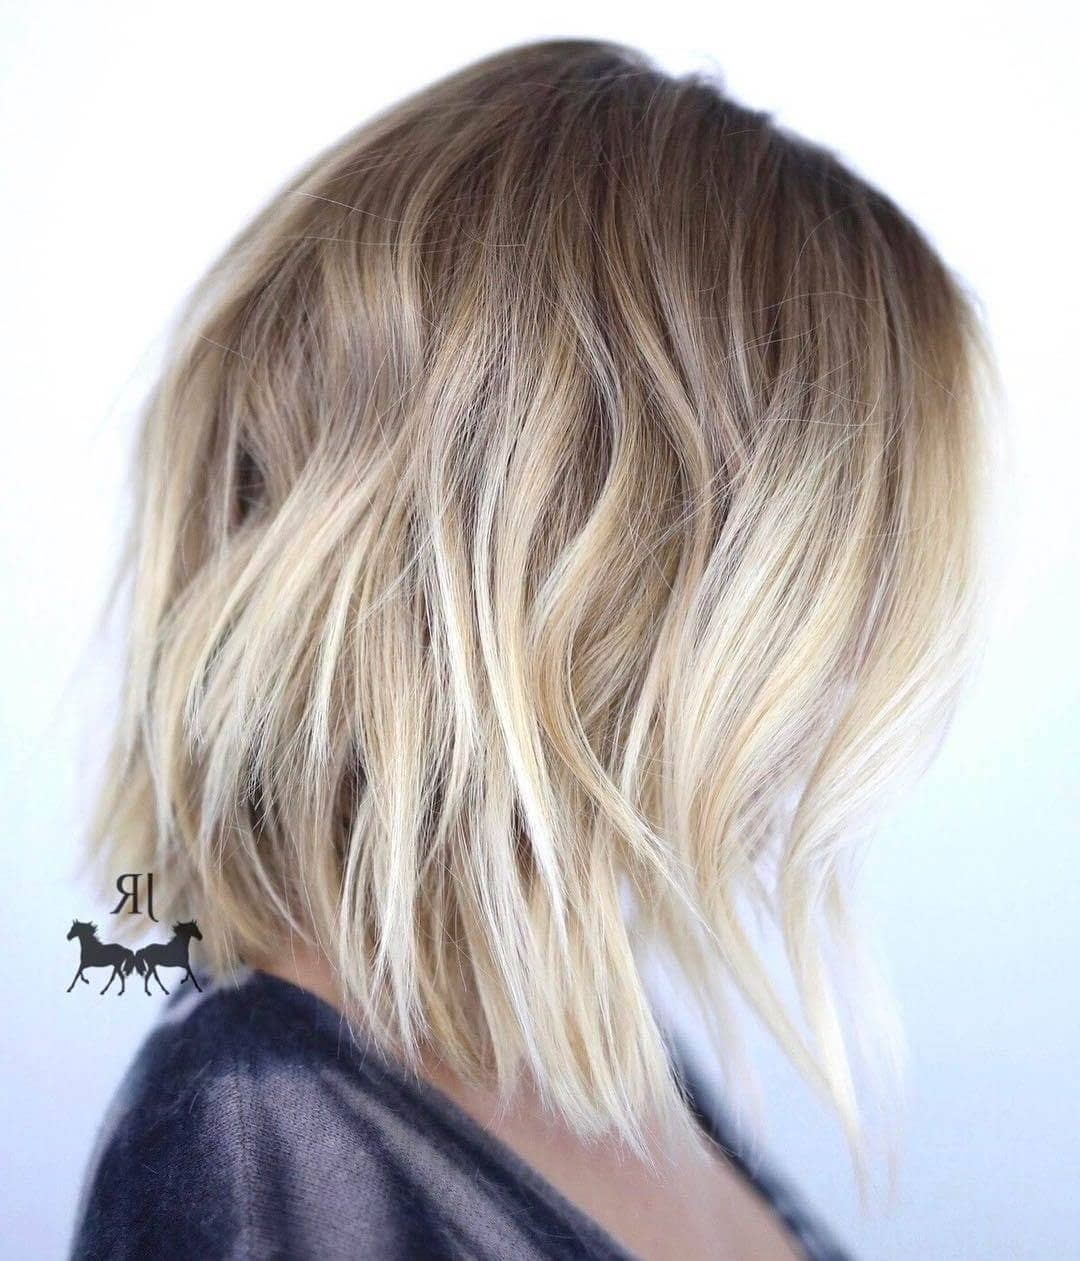 50 Fresh Short Blonde Hair Ideas To Update Your Style In 2018 With Choppy Golden Blonde Balayage Bob Hairstyles (View 8 of 20)